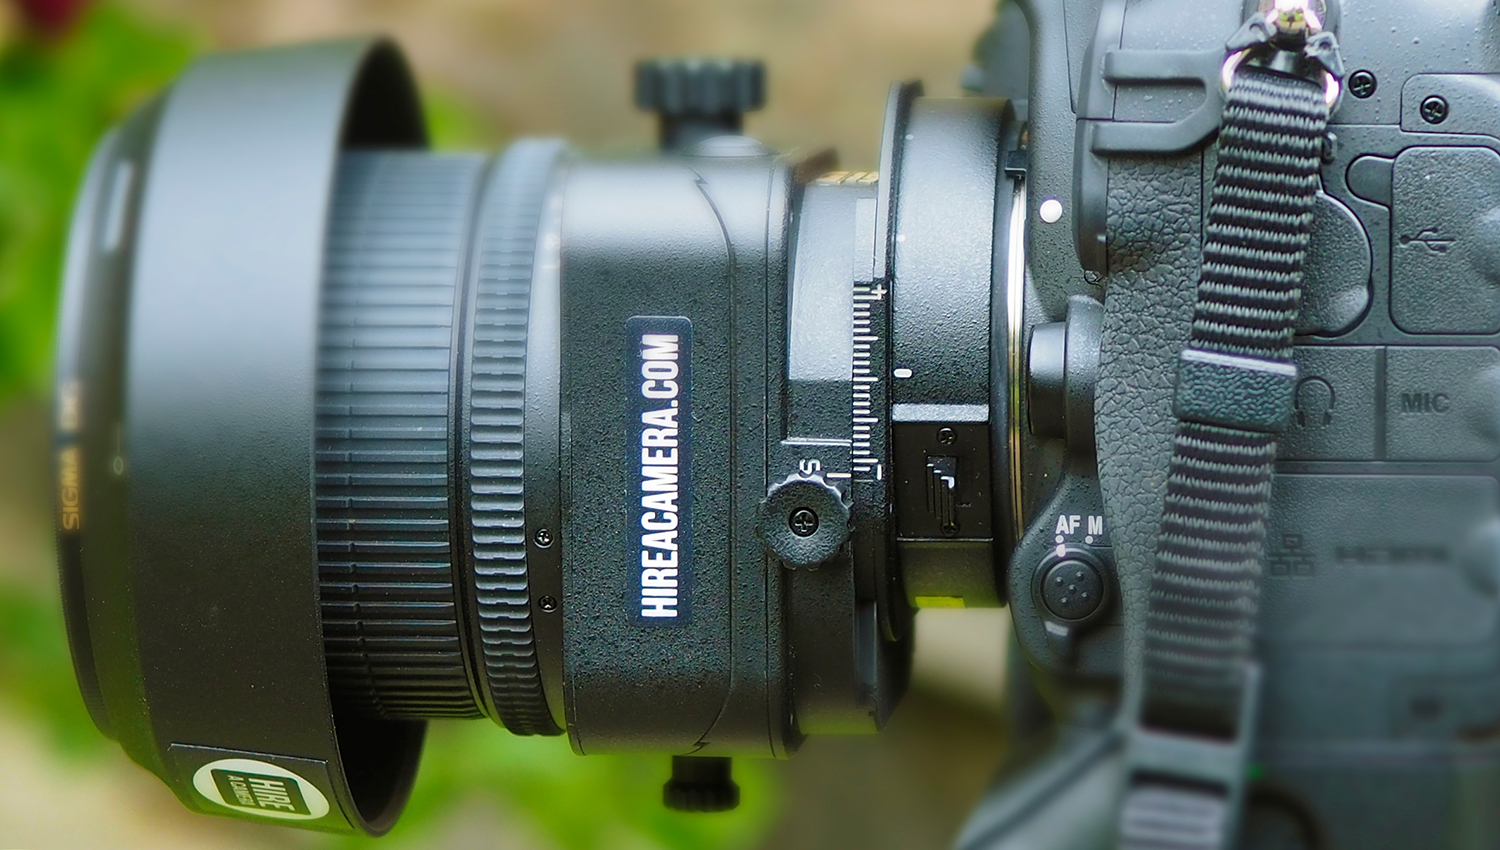 Reasons to Hire the Nikkor 45mm f/2.8 Tilt-Shift Lens